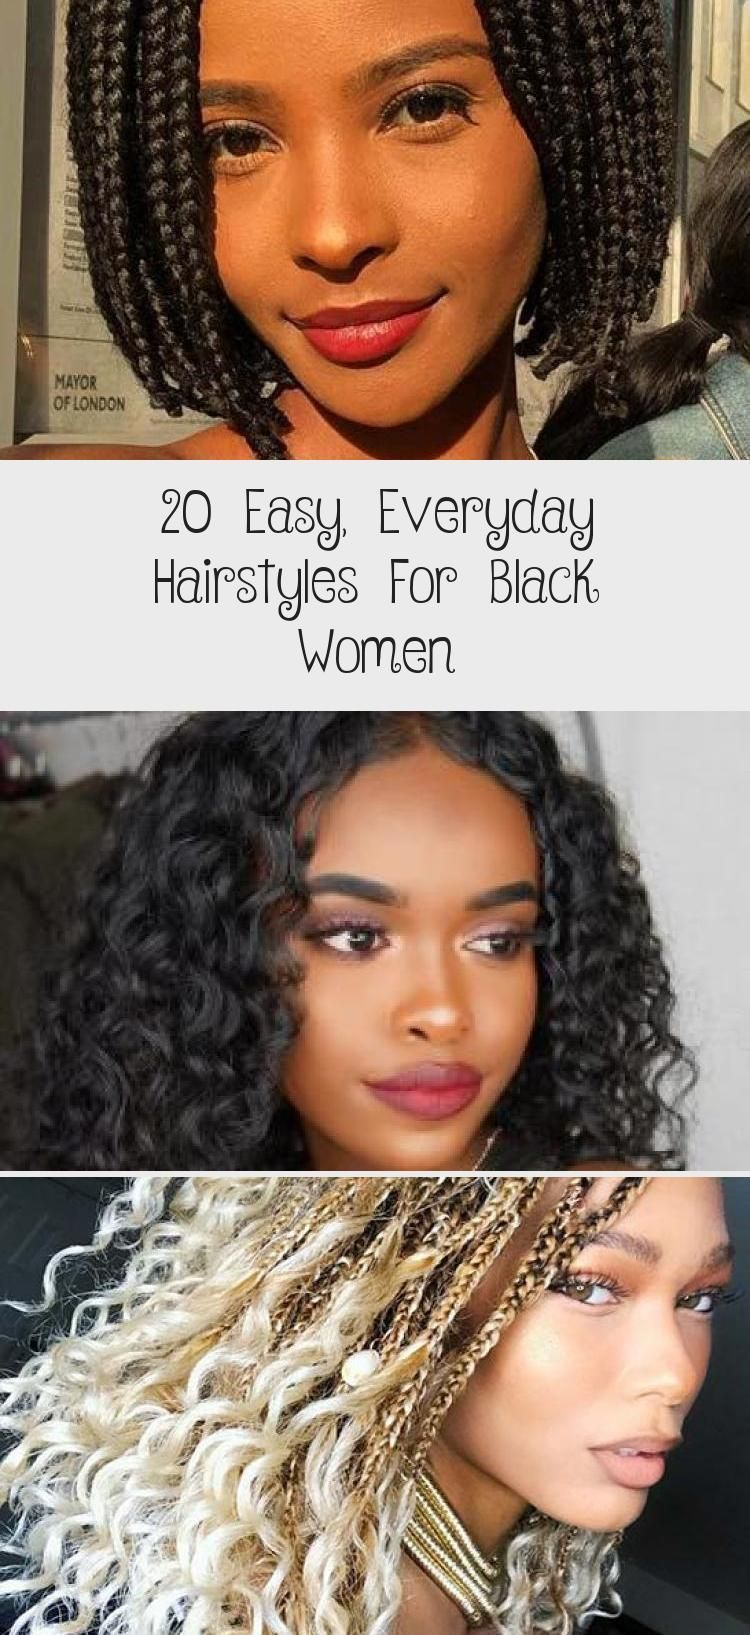 20 Easy Everyday Hairstyles For Black Women